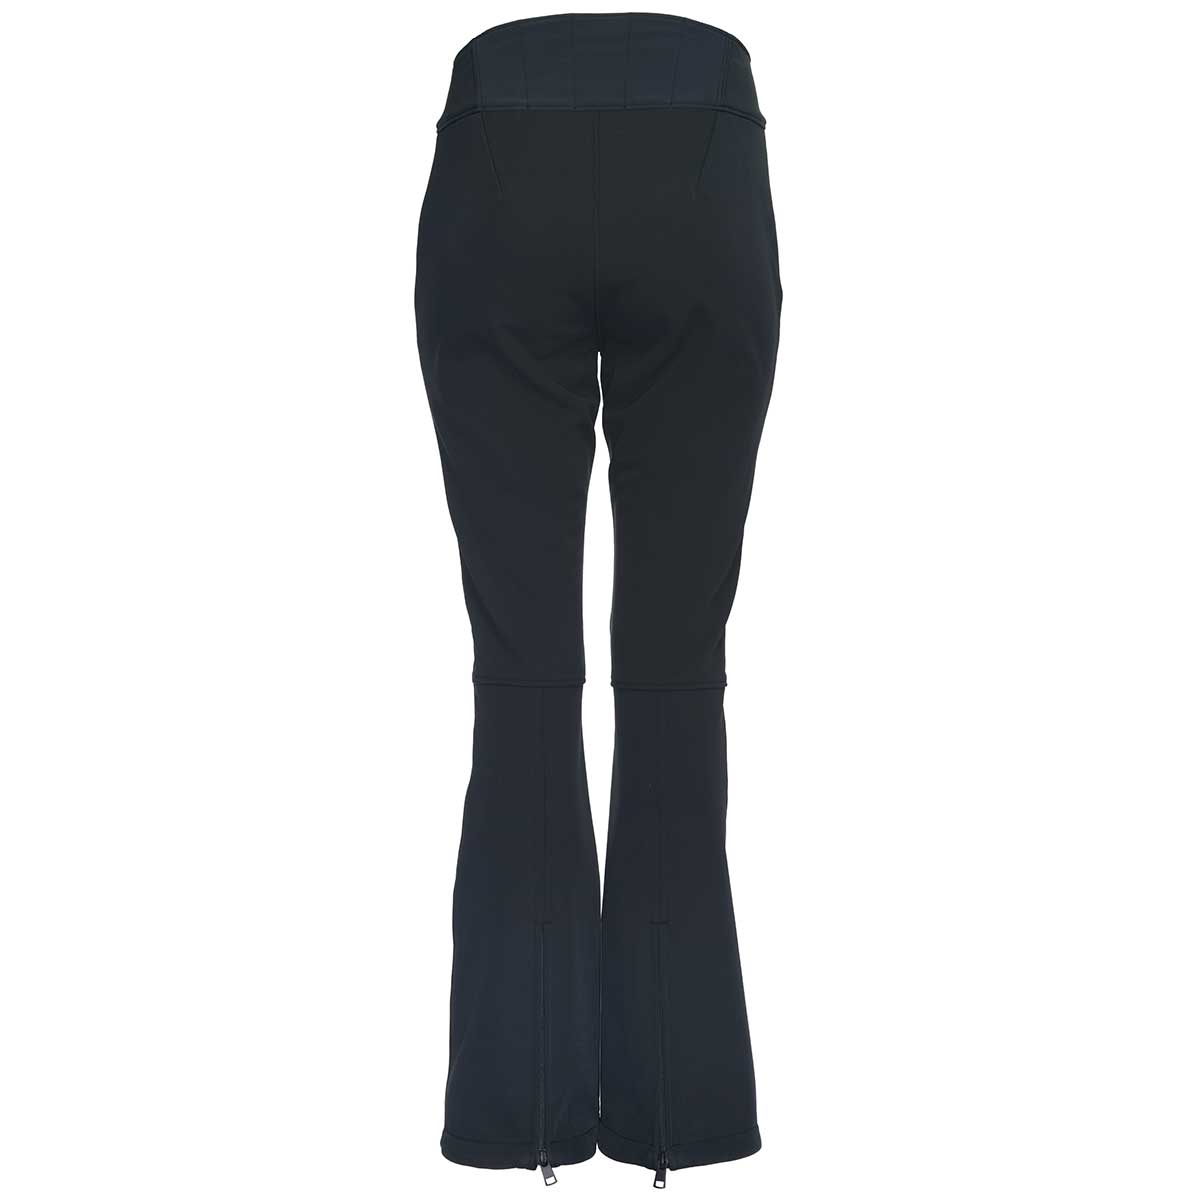 Bogner Fire+Ice Ila women's ski pant in black